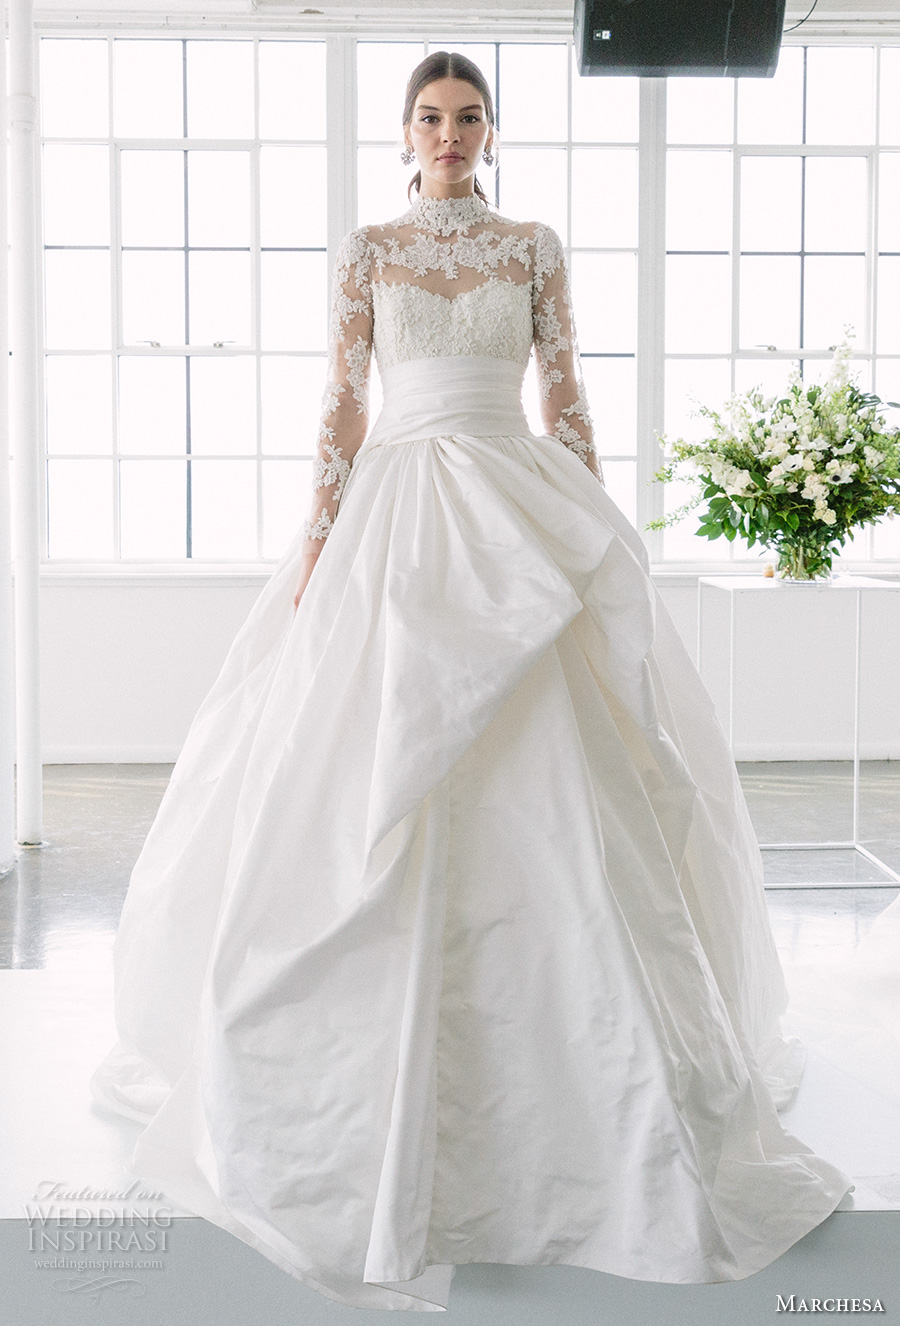 8fe52cef Long Sleeves Illusion High Neck Wedding Dresses 2018 Marchesa Bridal  Sweetheart Neckline Heavily Embellished Princess Ball Gown A Line